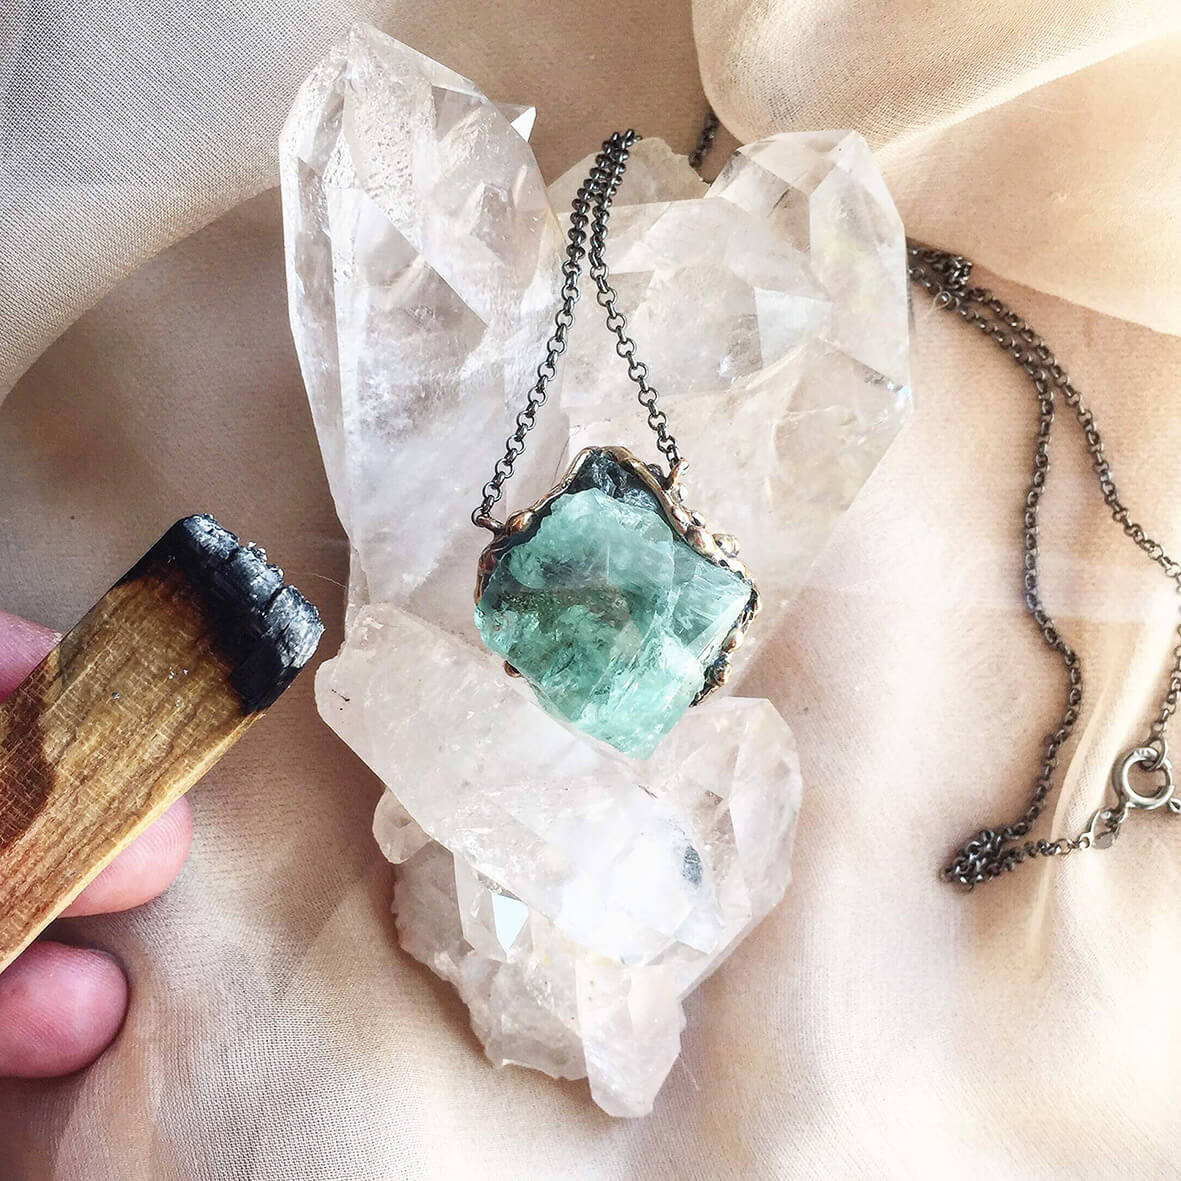 smudge is one of the most powerful ways to cleanse crystals